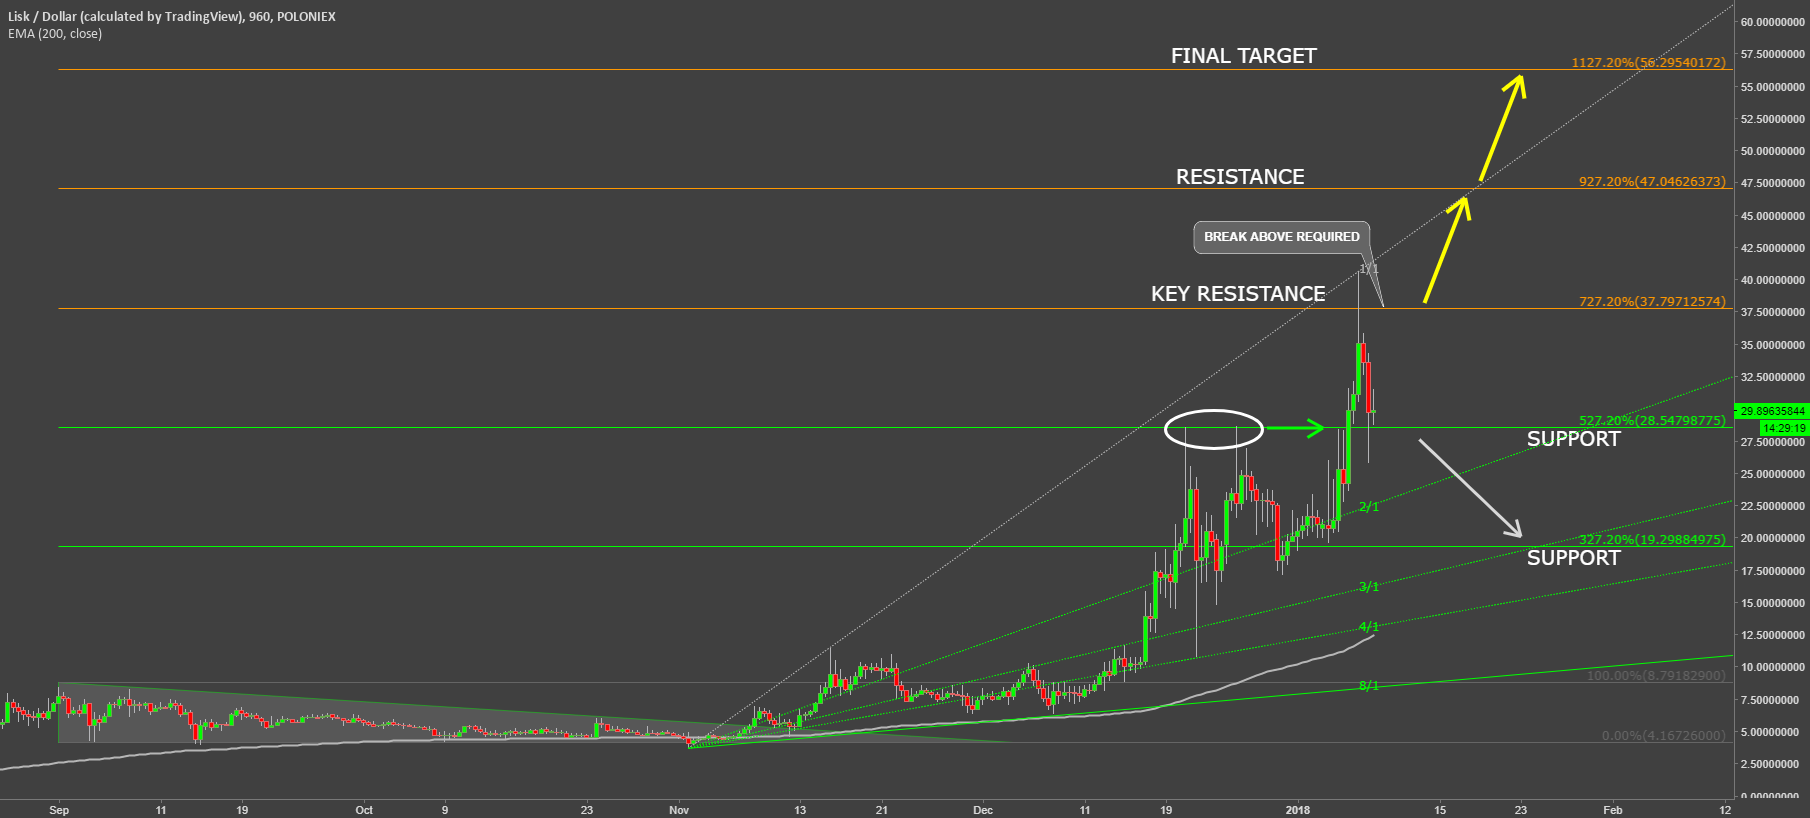 Lisk View After The Rally